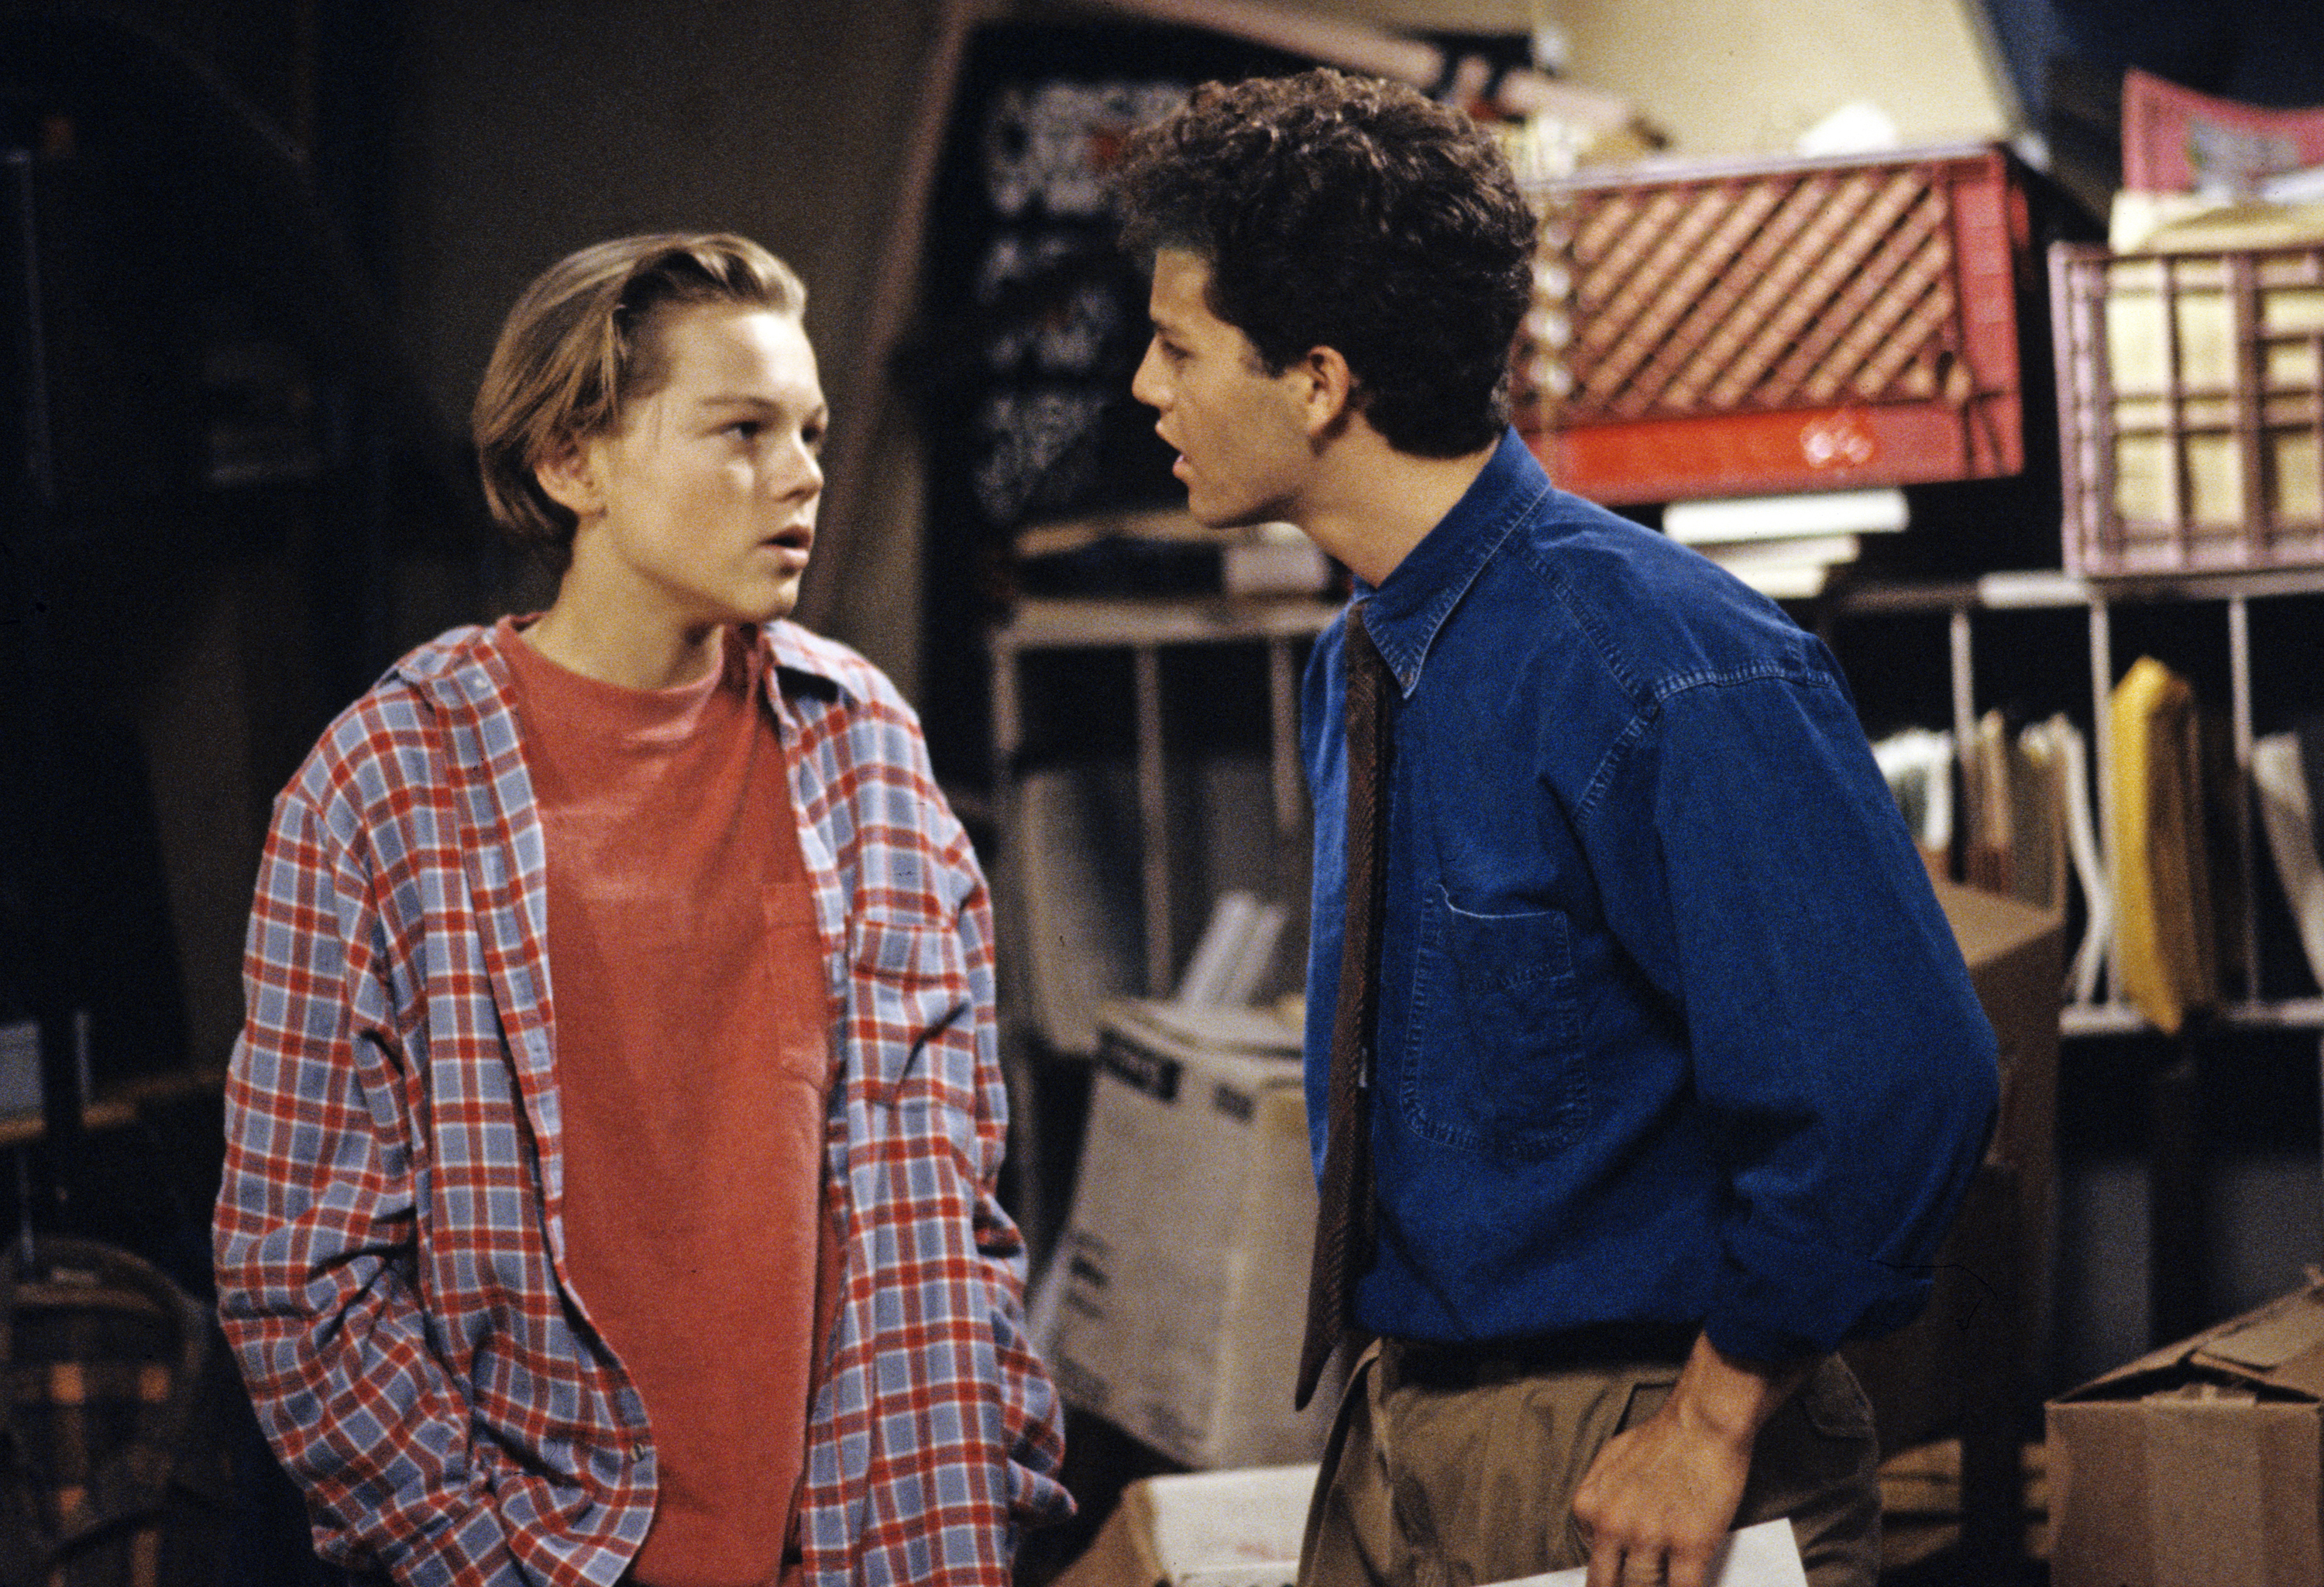 From left: Leonardo DiCaprio, as Luke Brower, and Kirk Cameron, as Mike Seaver, in <i>Growing Pains</i> in 1991.